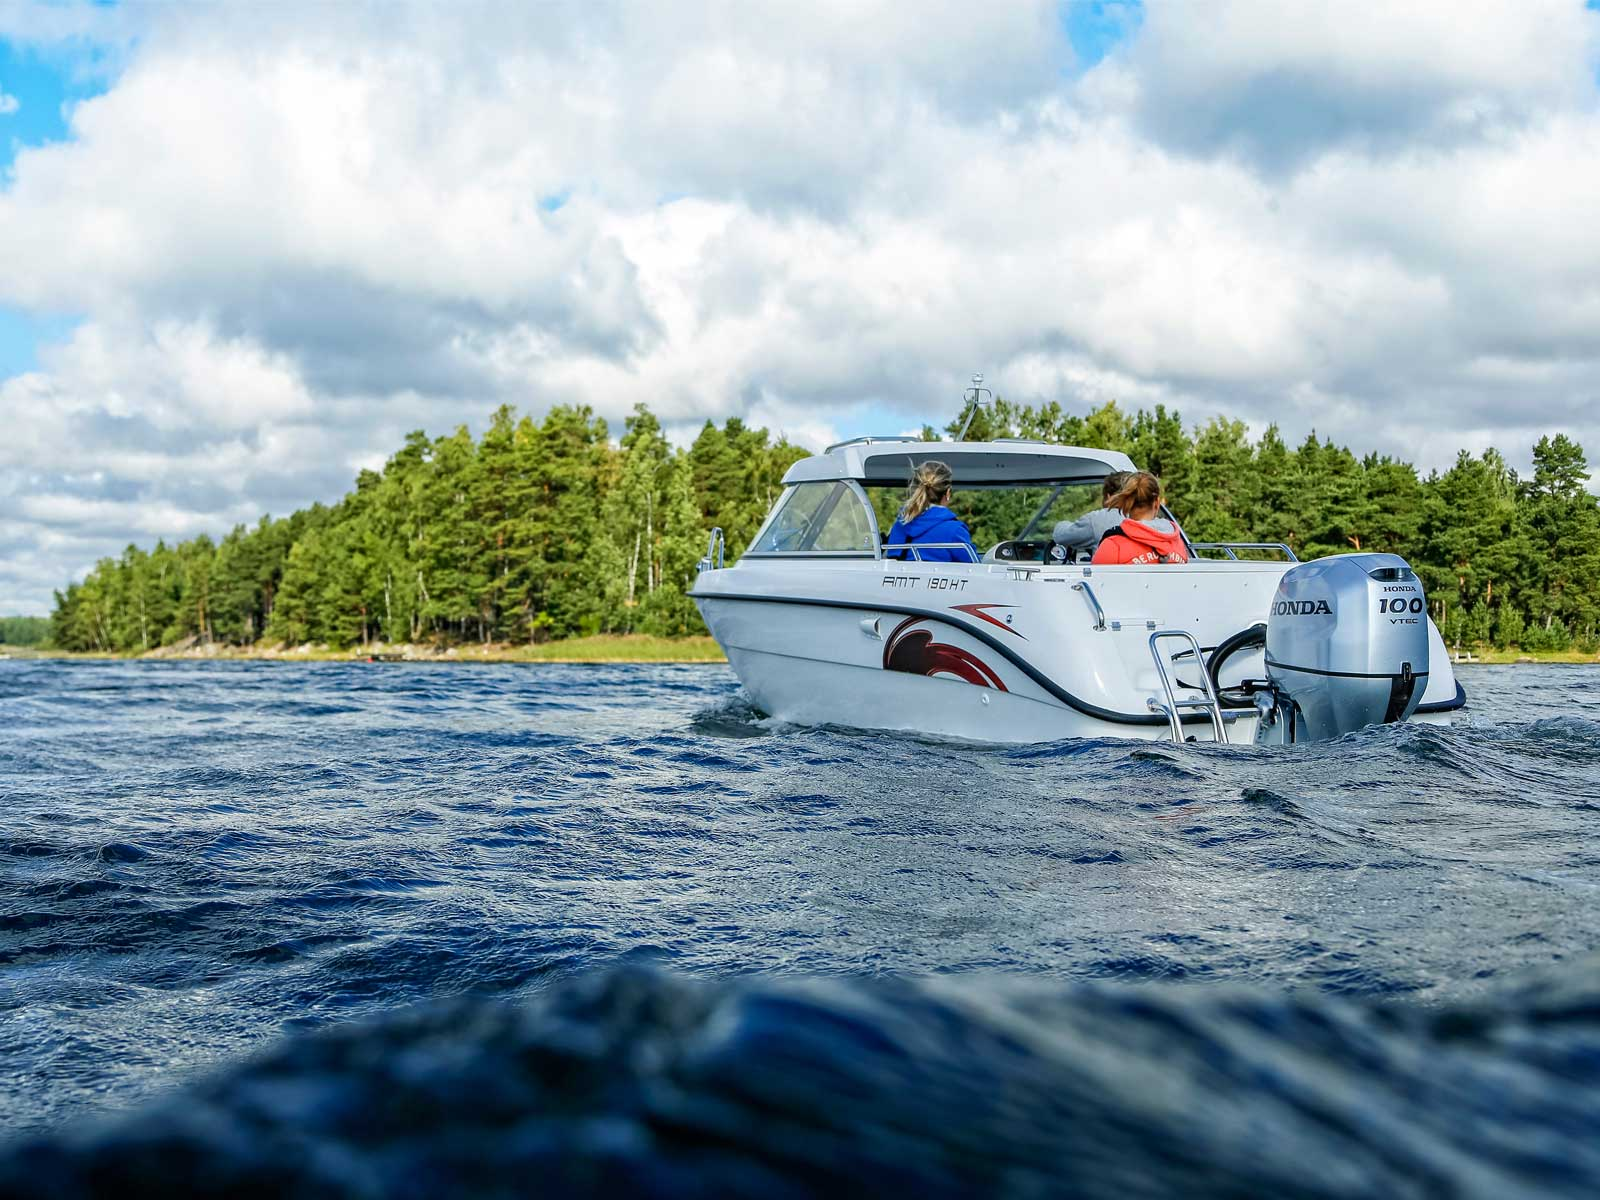 AMT 190 HT | Boat Solutions, Utting am Ammersee